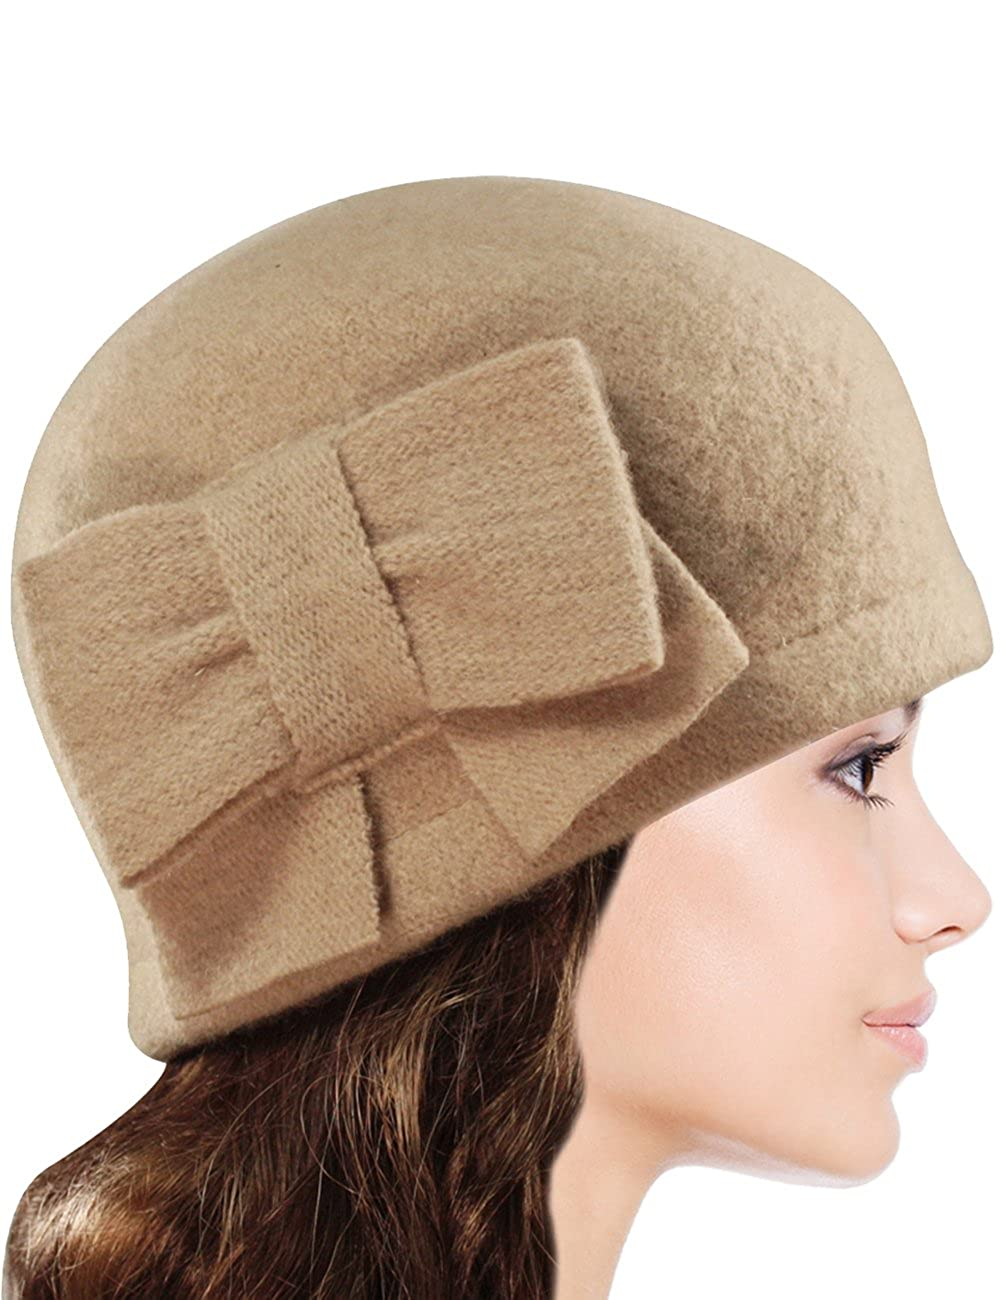 4a14e23c0 1930s Style Hats | Buy 30s Ladies Hats